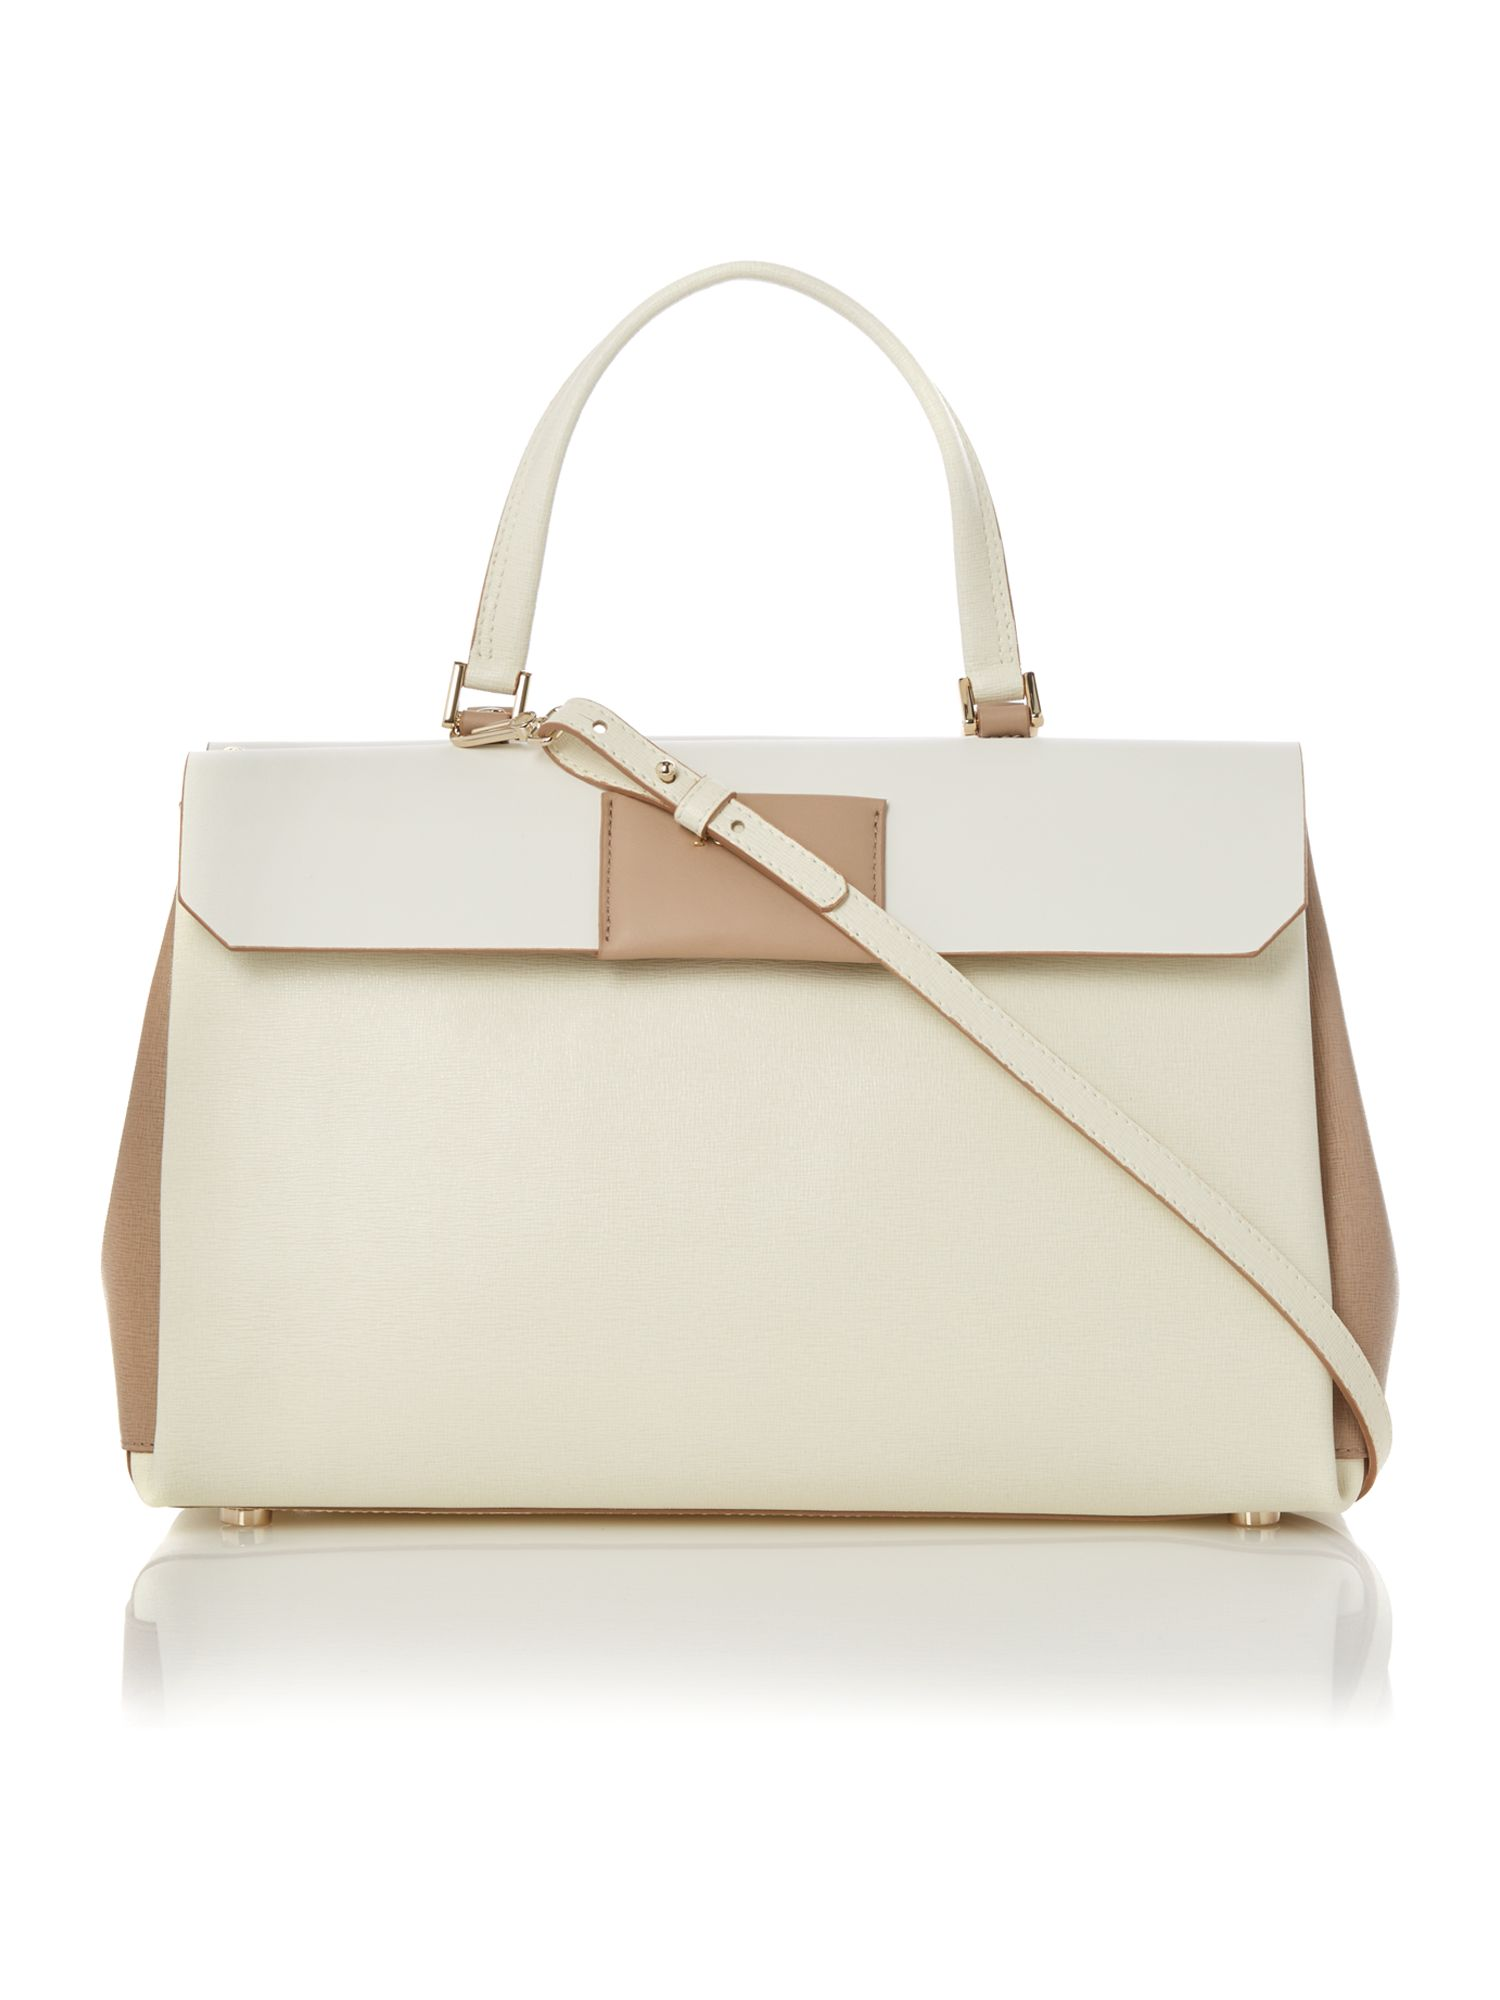 Meridienne neutral tote bag